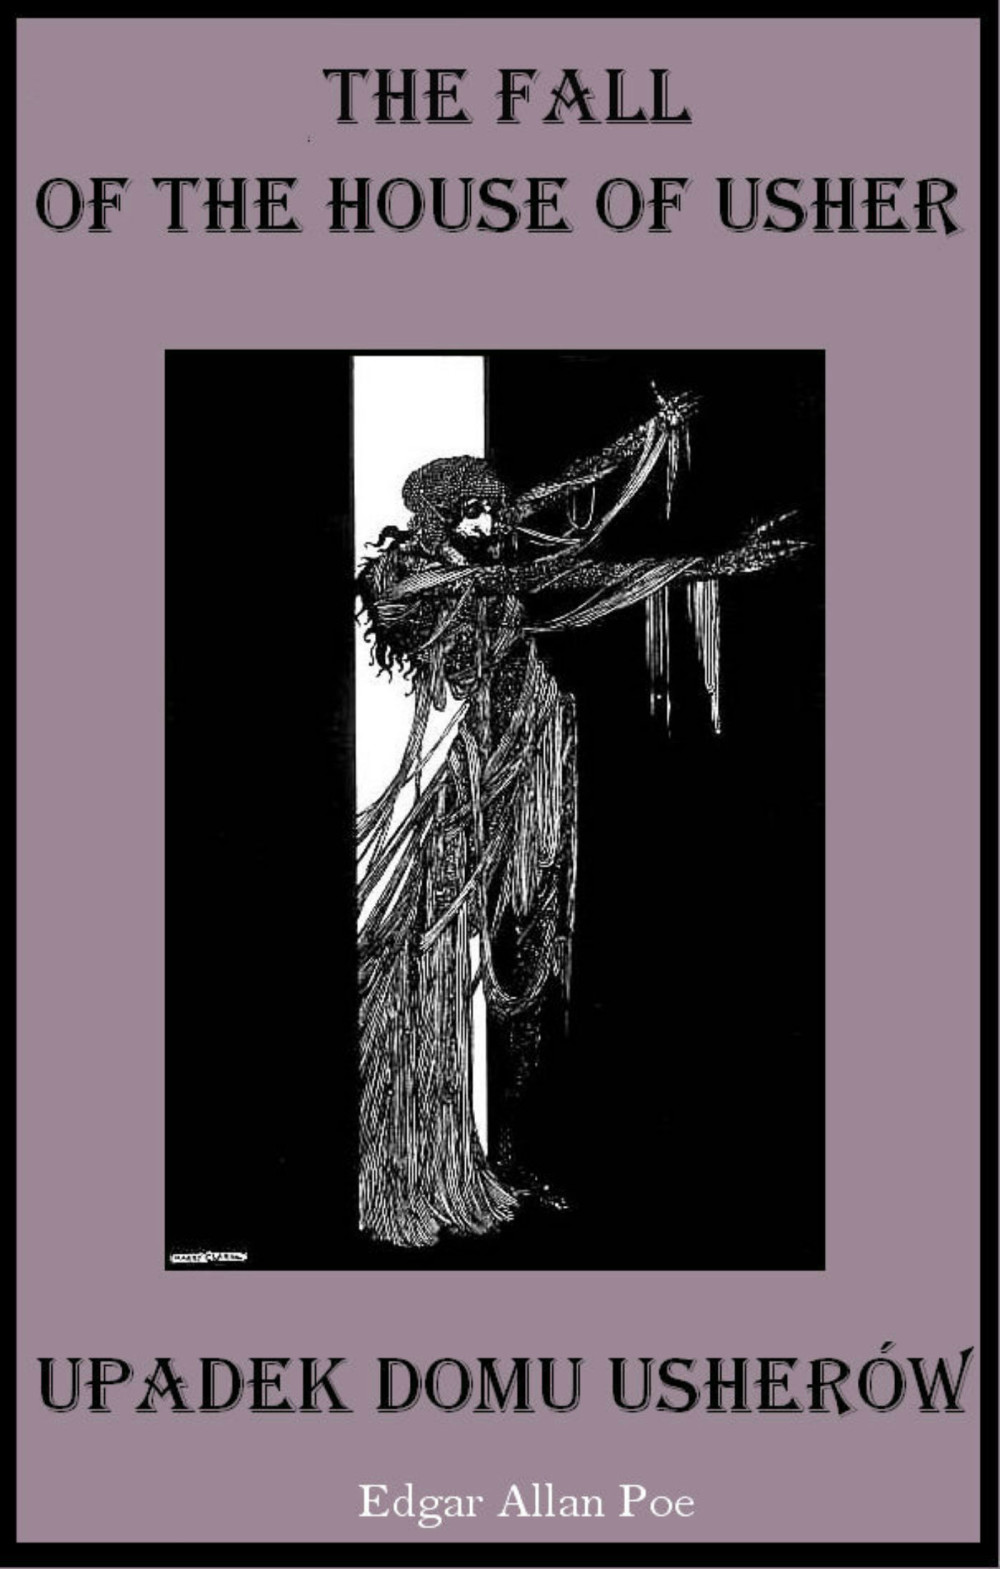 an analysis of the symbols in the fall of the house of usher by edgar allan poe The fall of the house of usher is acclaimed as one of edgar allan poe's greatest works poe uses symbolism and analogies in both characters and setting to tell.